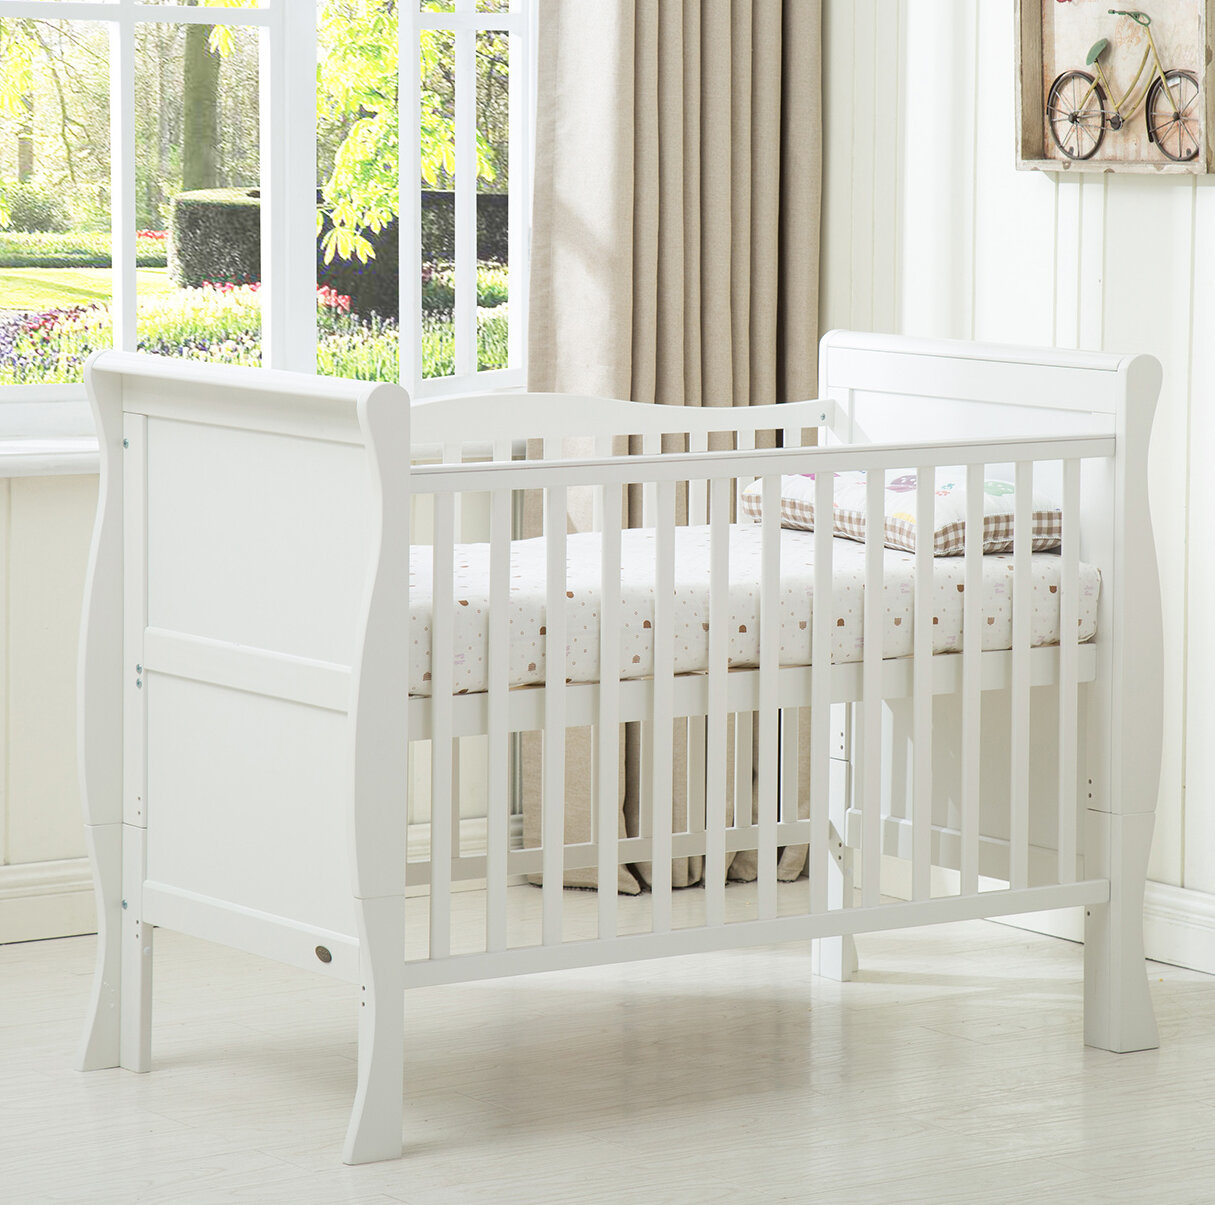 NEW BEAUTIFUL CRIB s saver cot cotbed SET  many colours